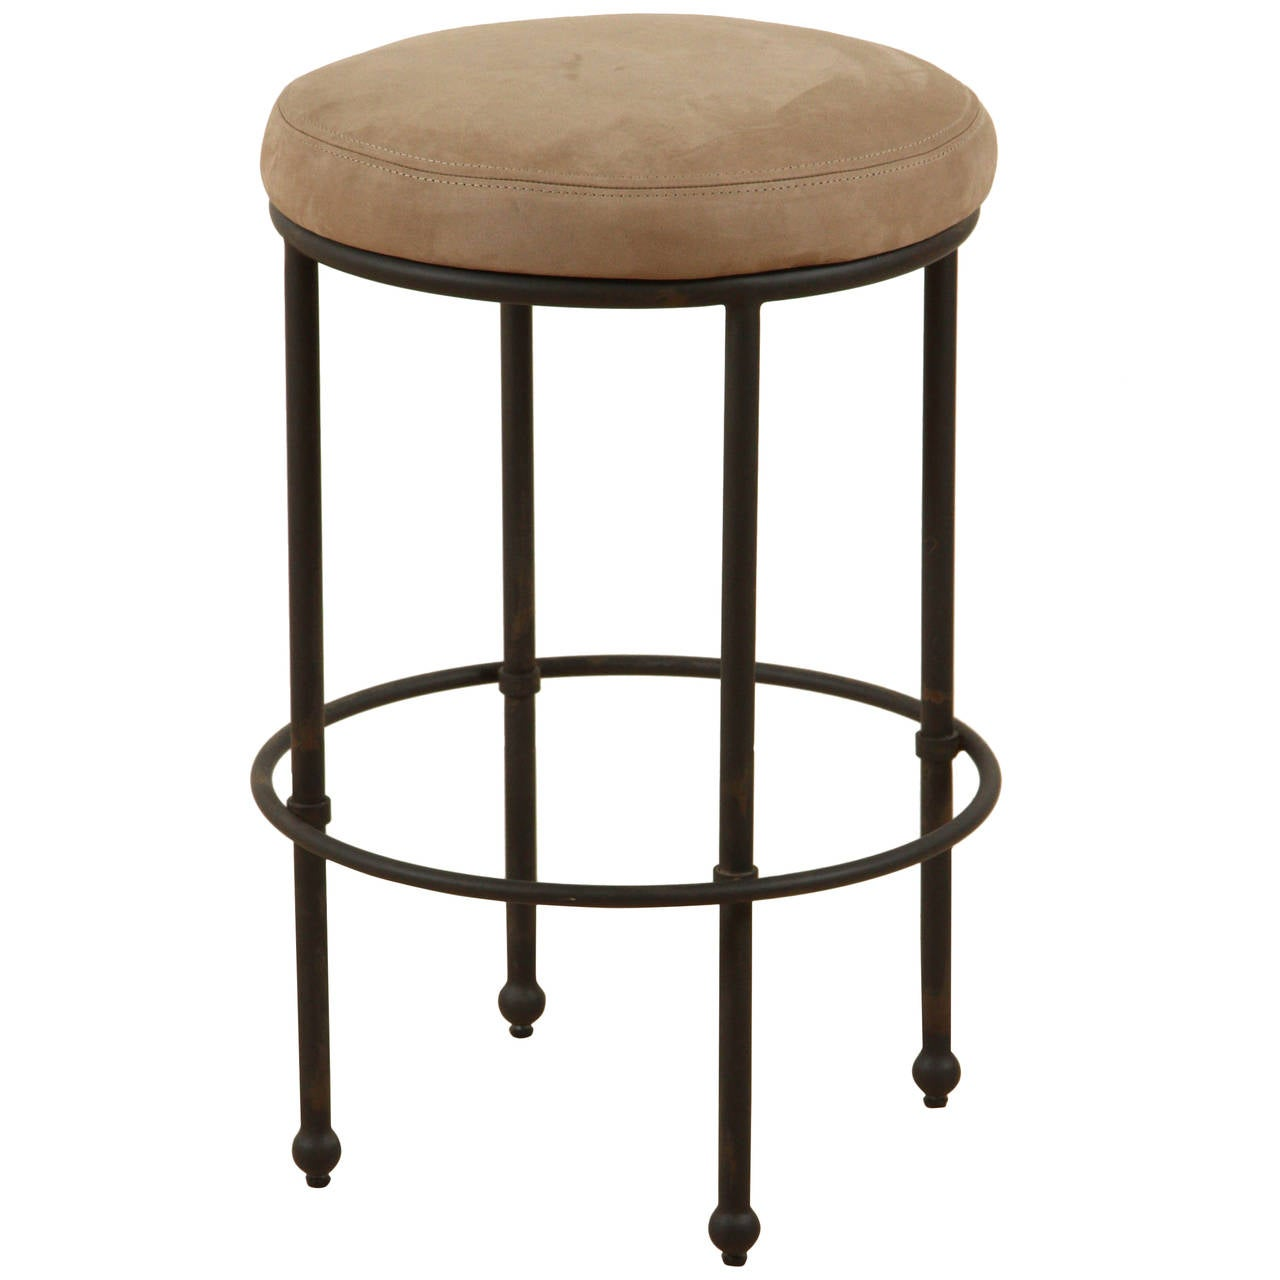 Orsini Counterstool in Nubuck and Blackned Steel by Lawson-Fenning